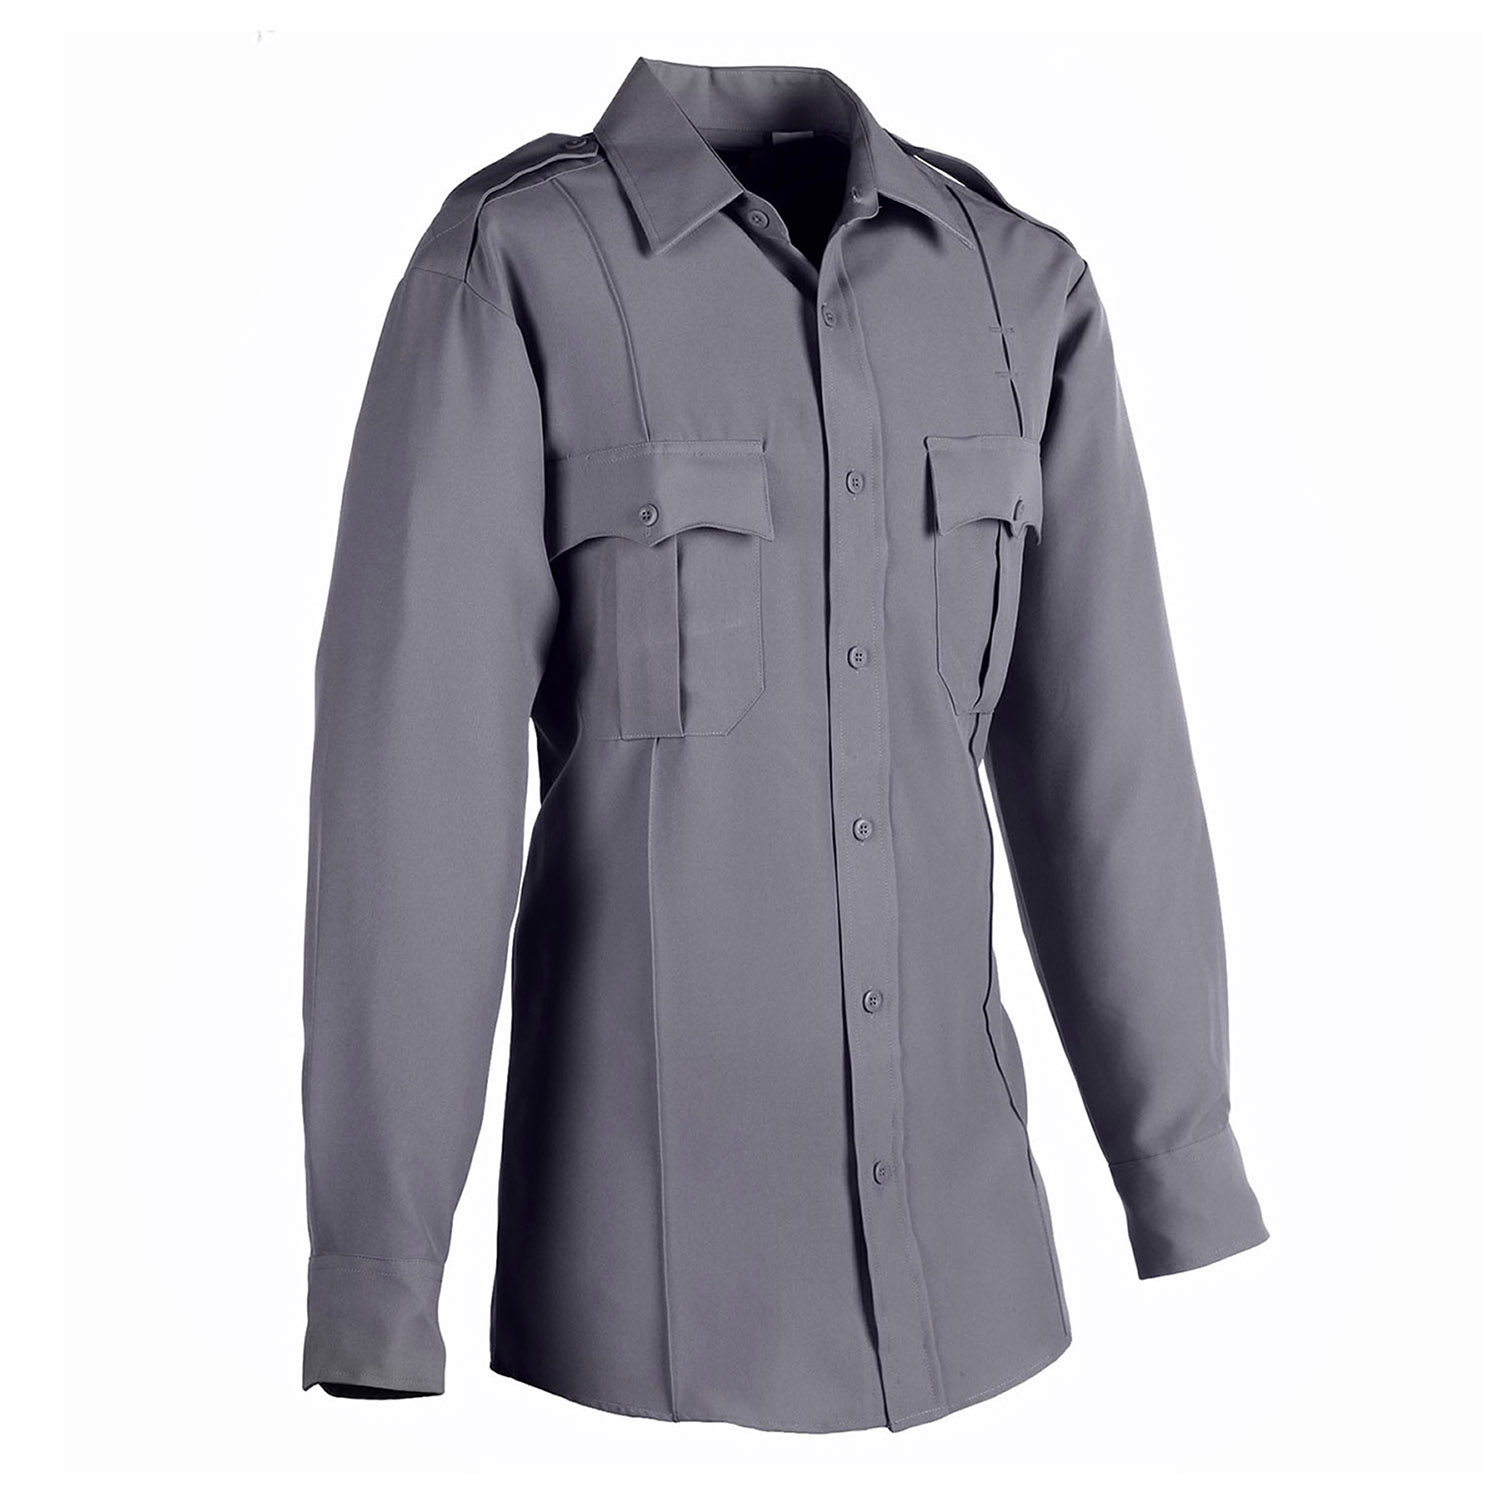 Cover Image For Paramedic Long Sleeve Shirt  - XLong